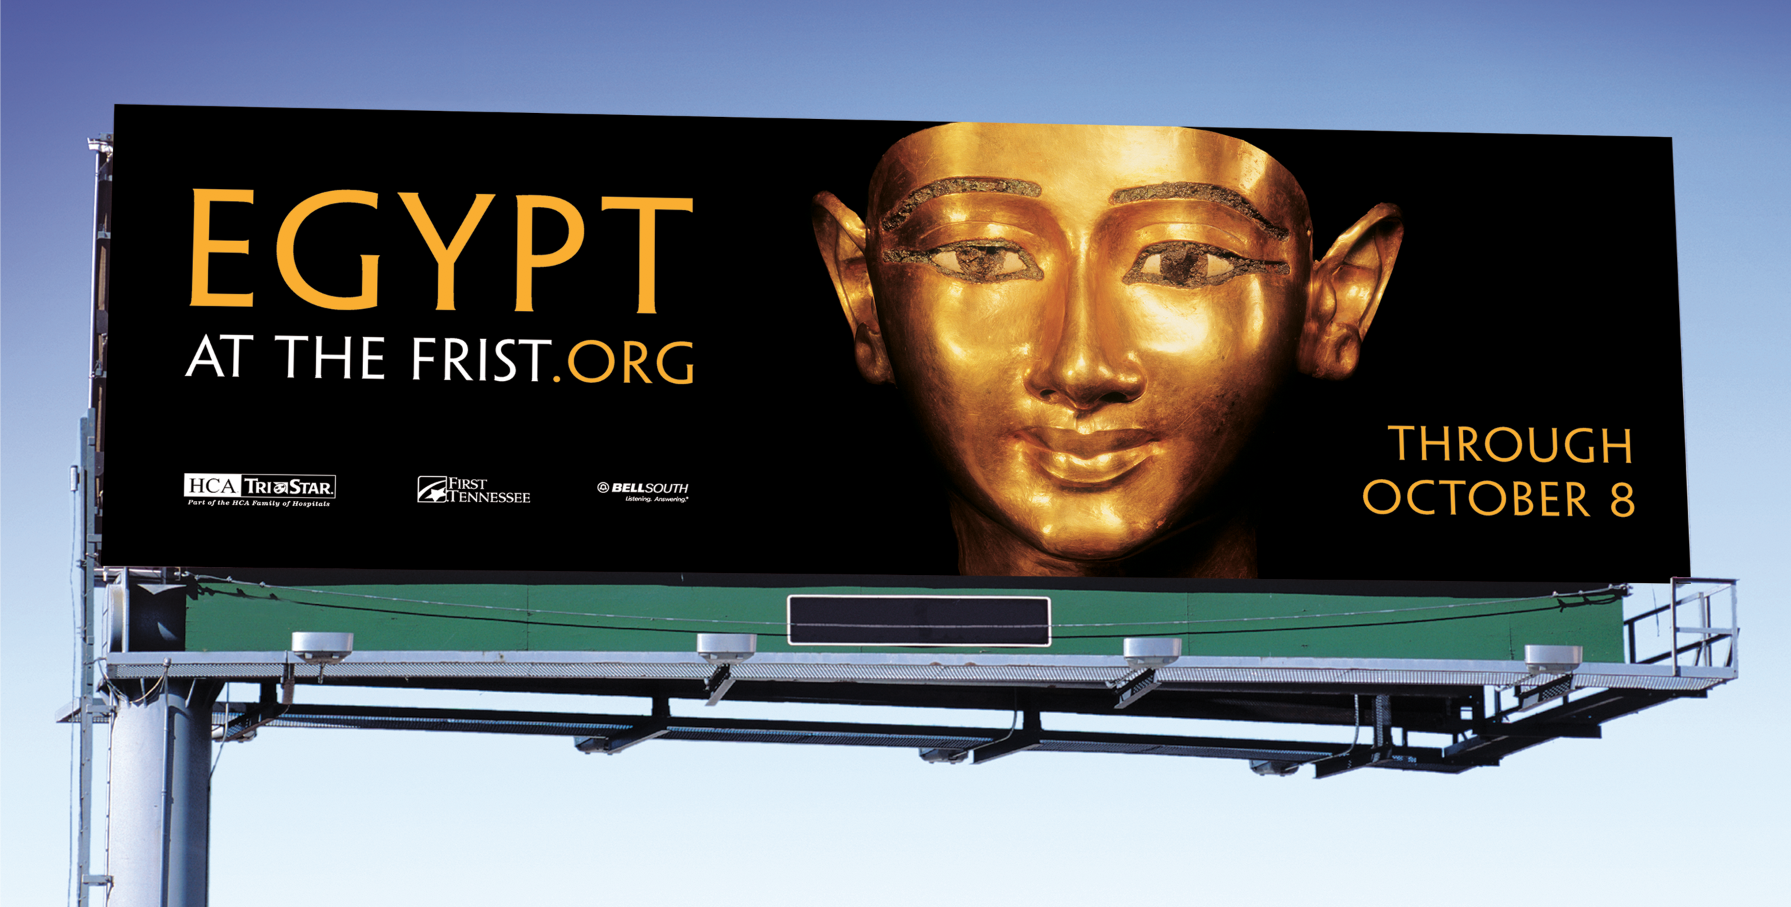 bohan-Frist egypt-billboard-unwrapped